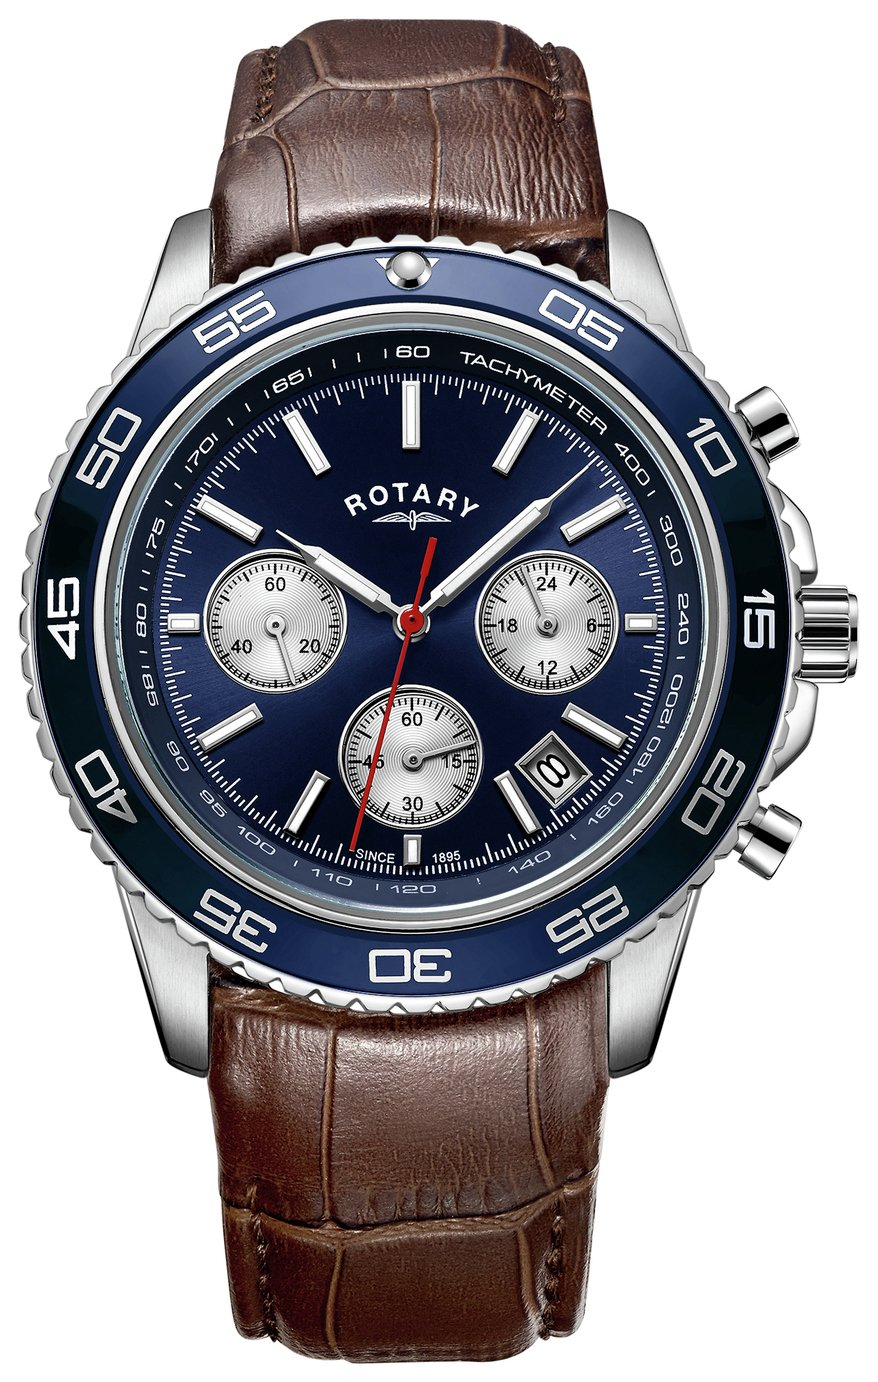 Rotary Men's Brown Leather Strap Chronograph Watch - Blue